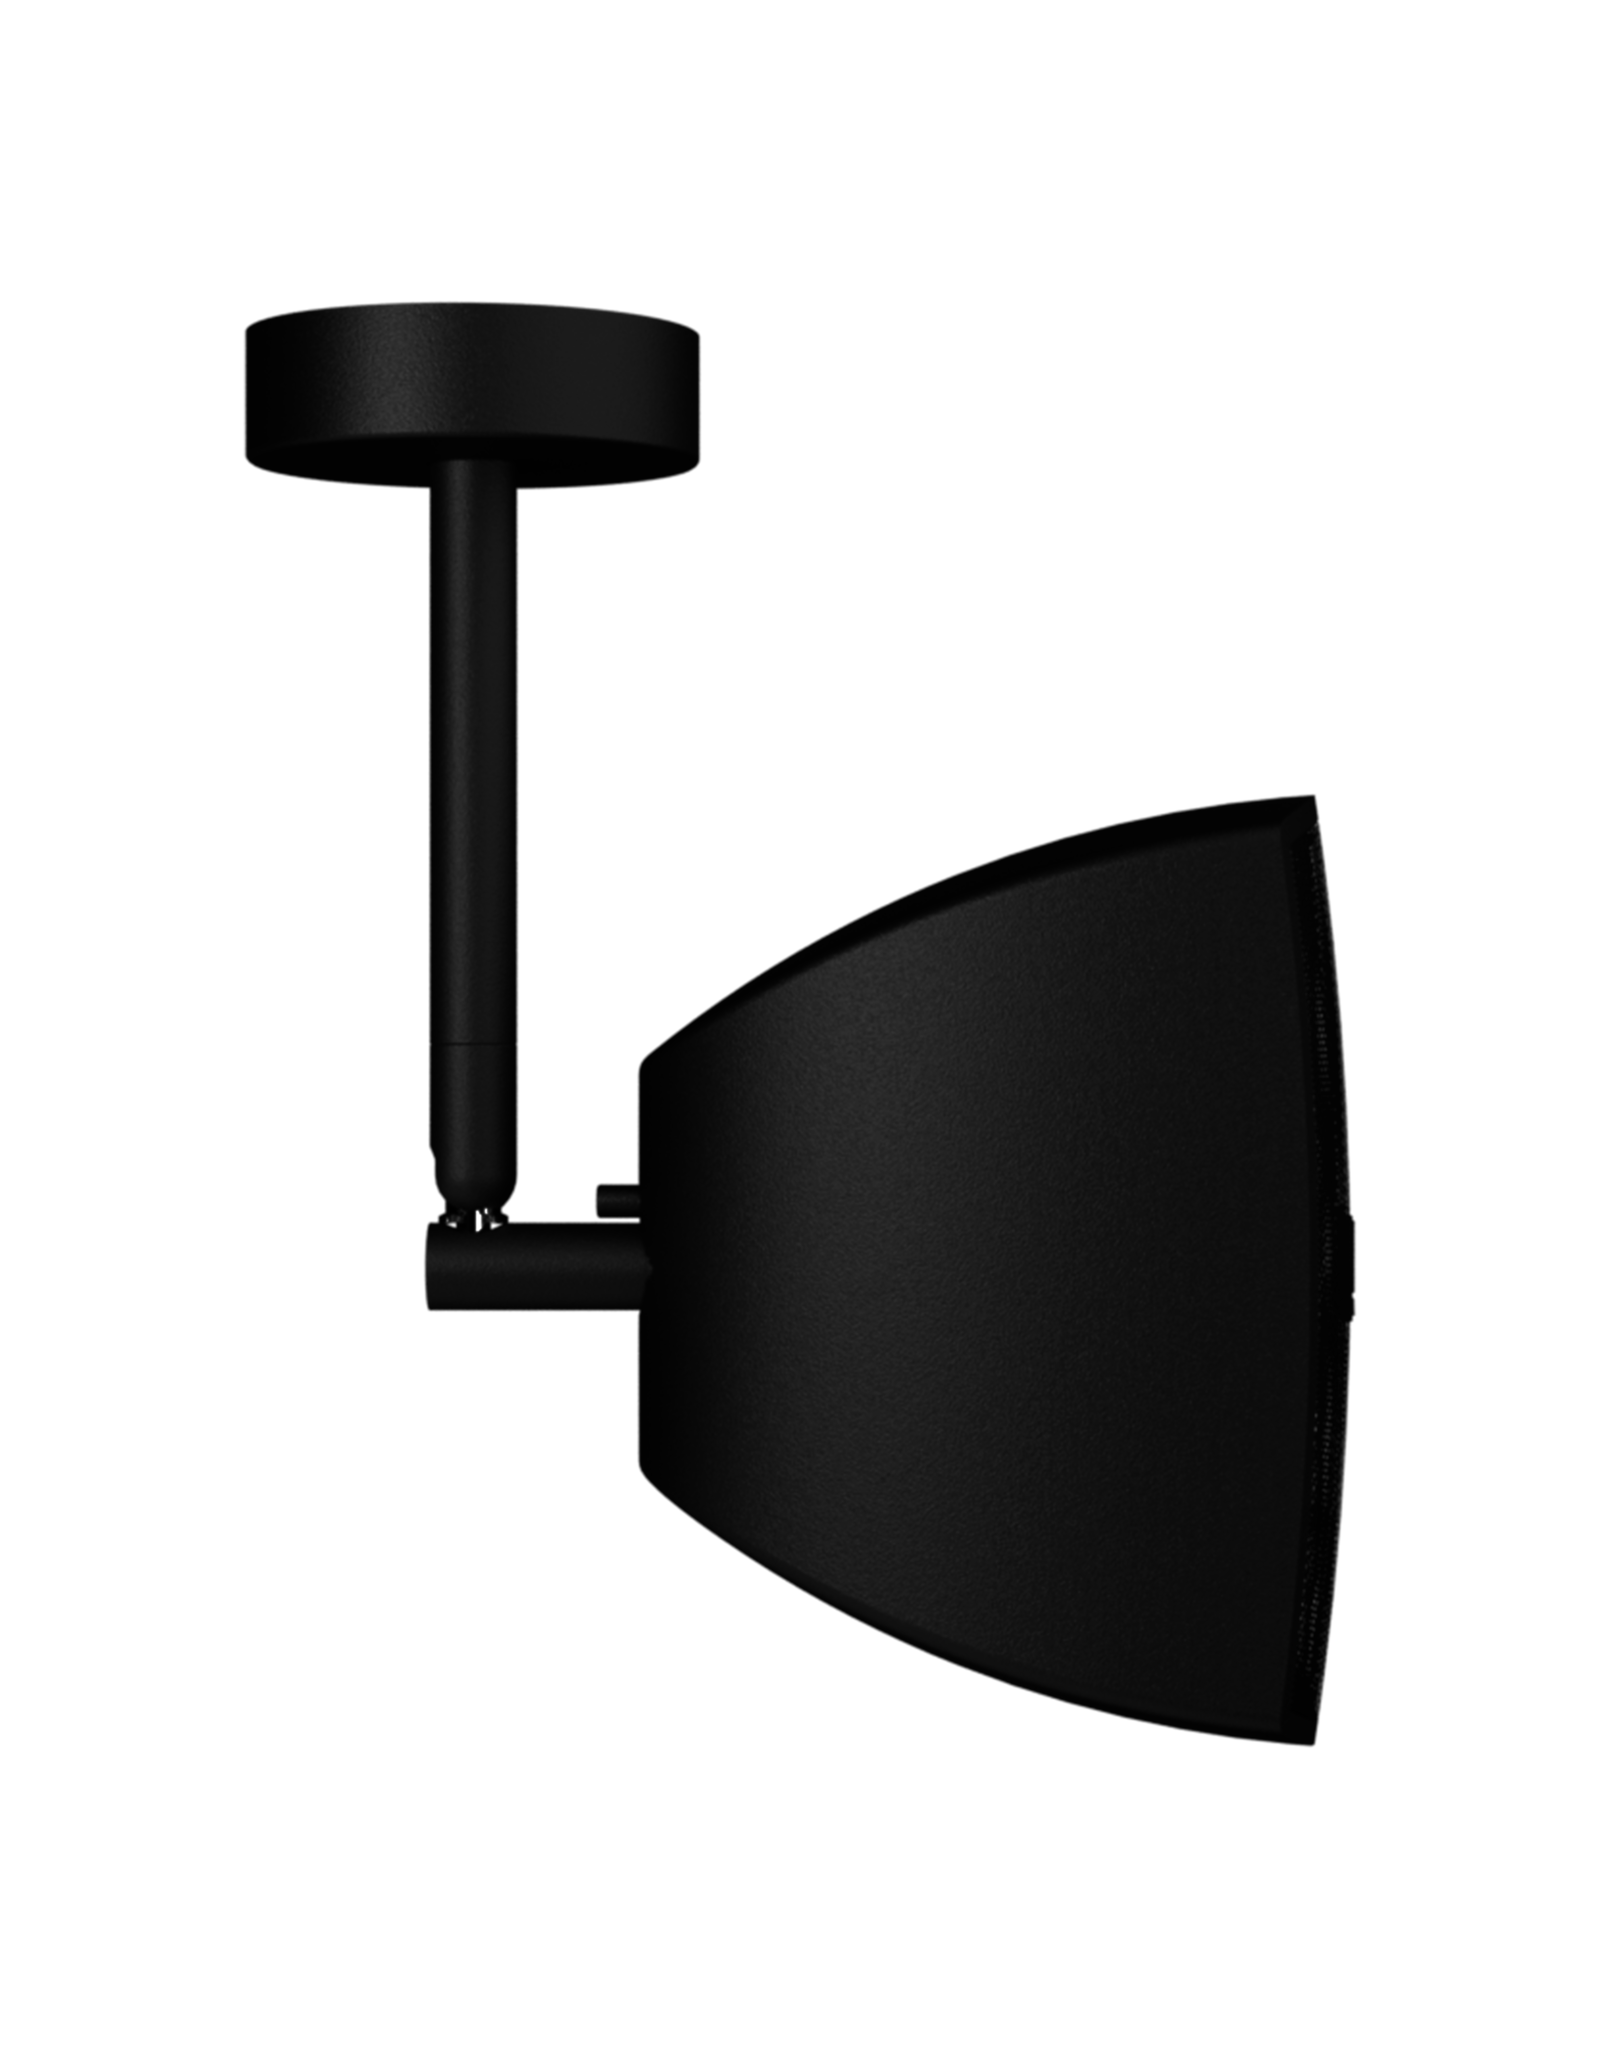 Audac ATEO2 with surface ceiling mount Black version - 8 Ohm